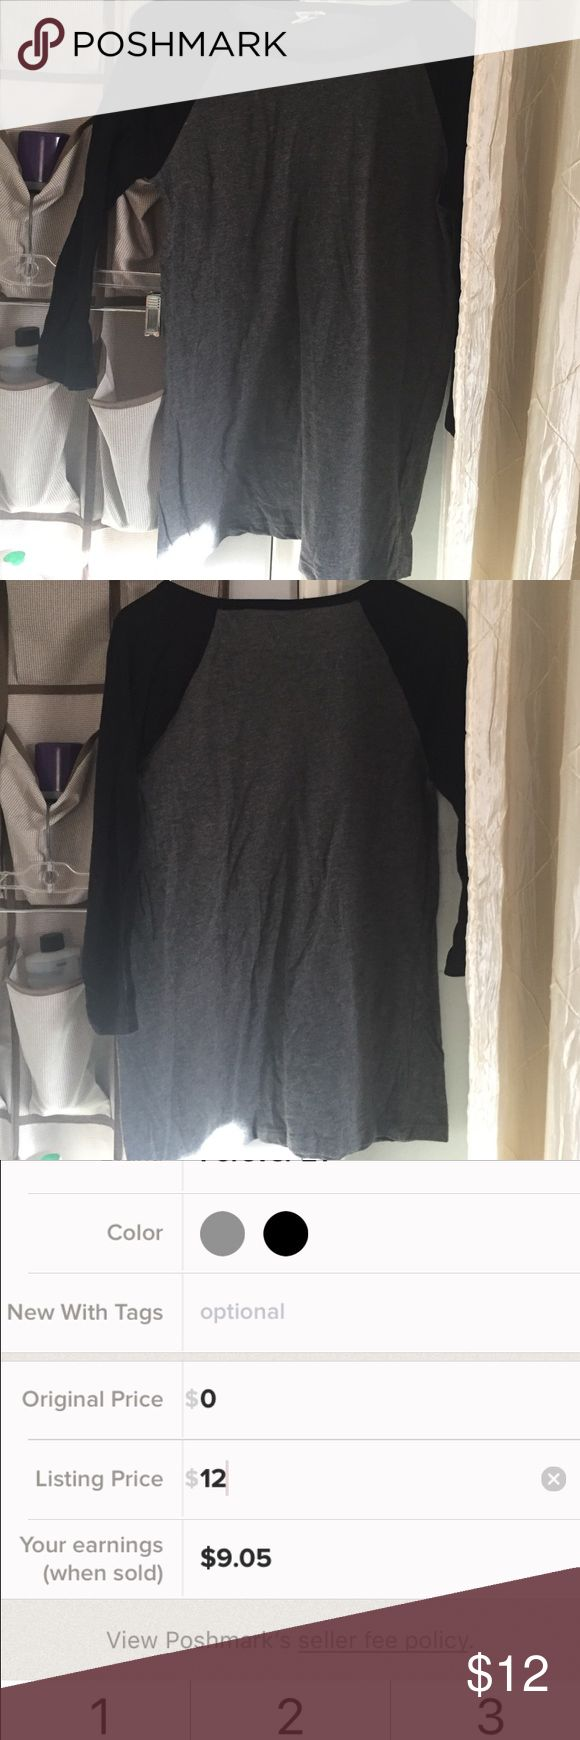 Forever 21 black & grey raglan half sleeve shirt L Forever 21 grey & black half sleeve long sleeve size L. Material is very stretchy. Length is 26 inches. If you have any questions let me know. I AM A FAST SHIPPER 😬. I also have it available in blue as well Forever 21 Tops Tees - Long Sleeve